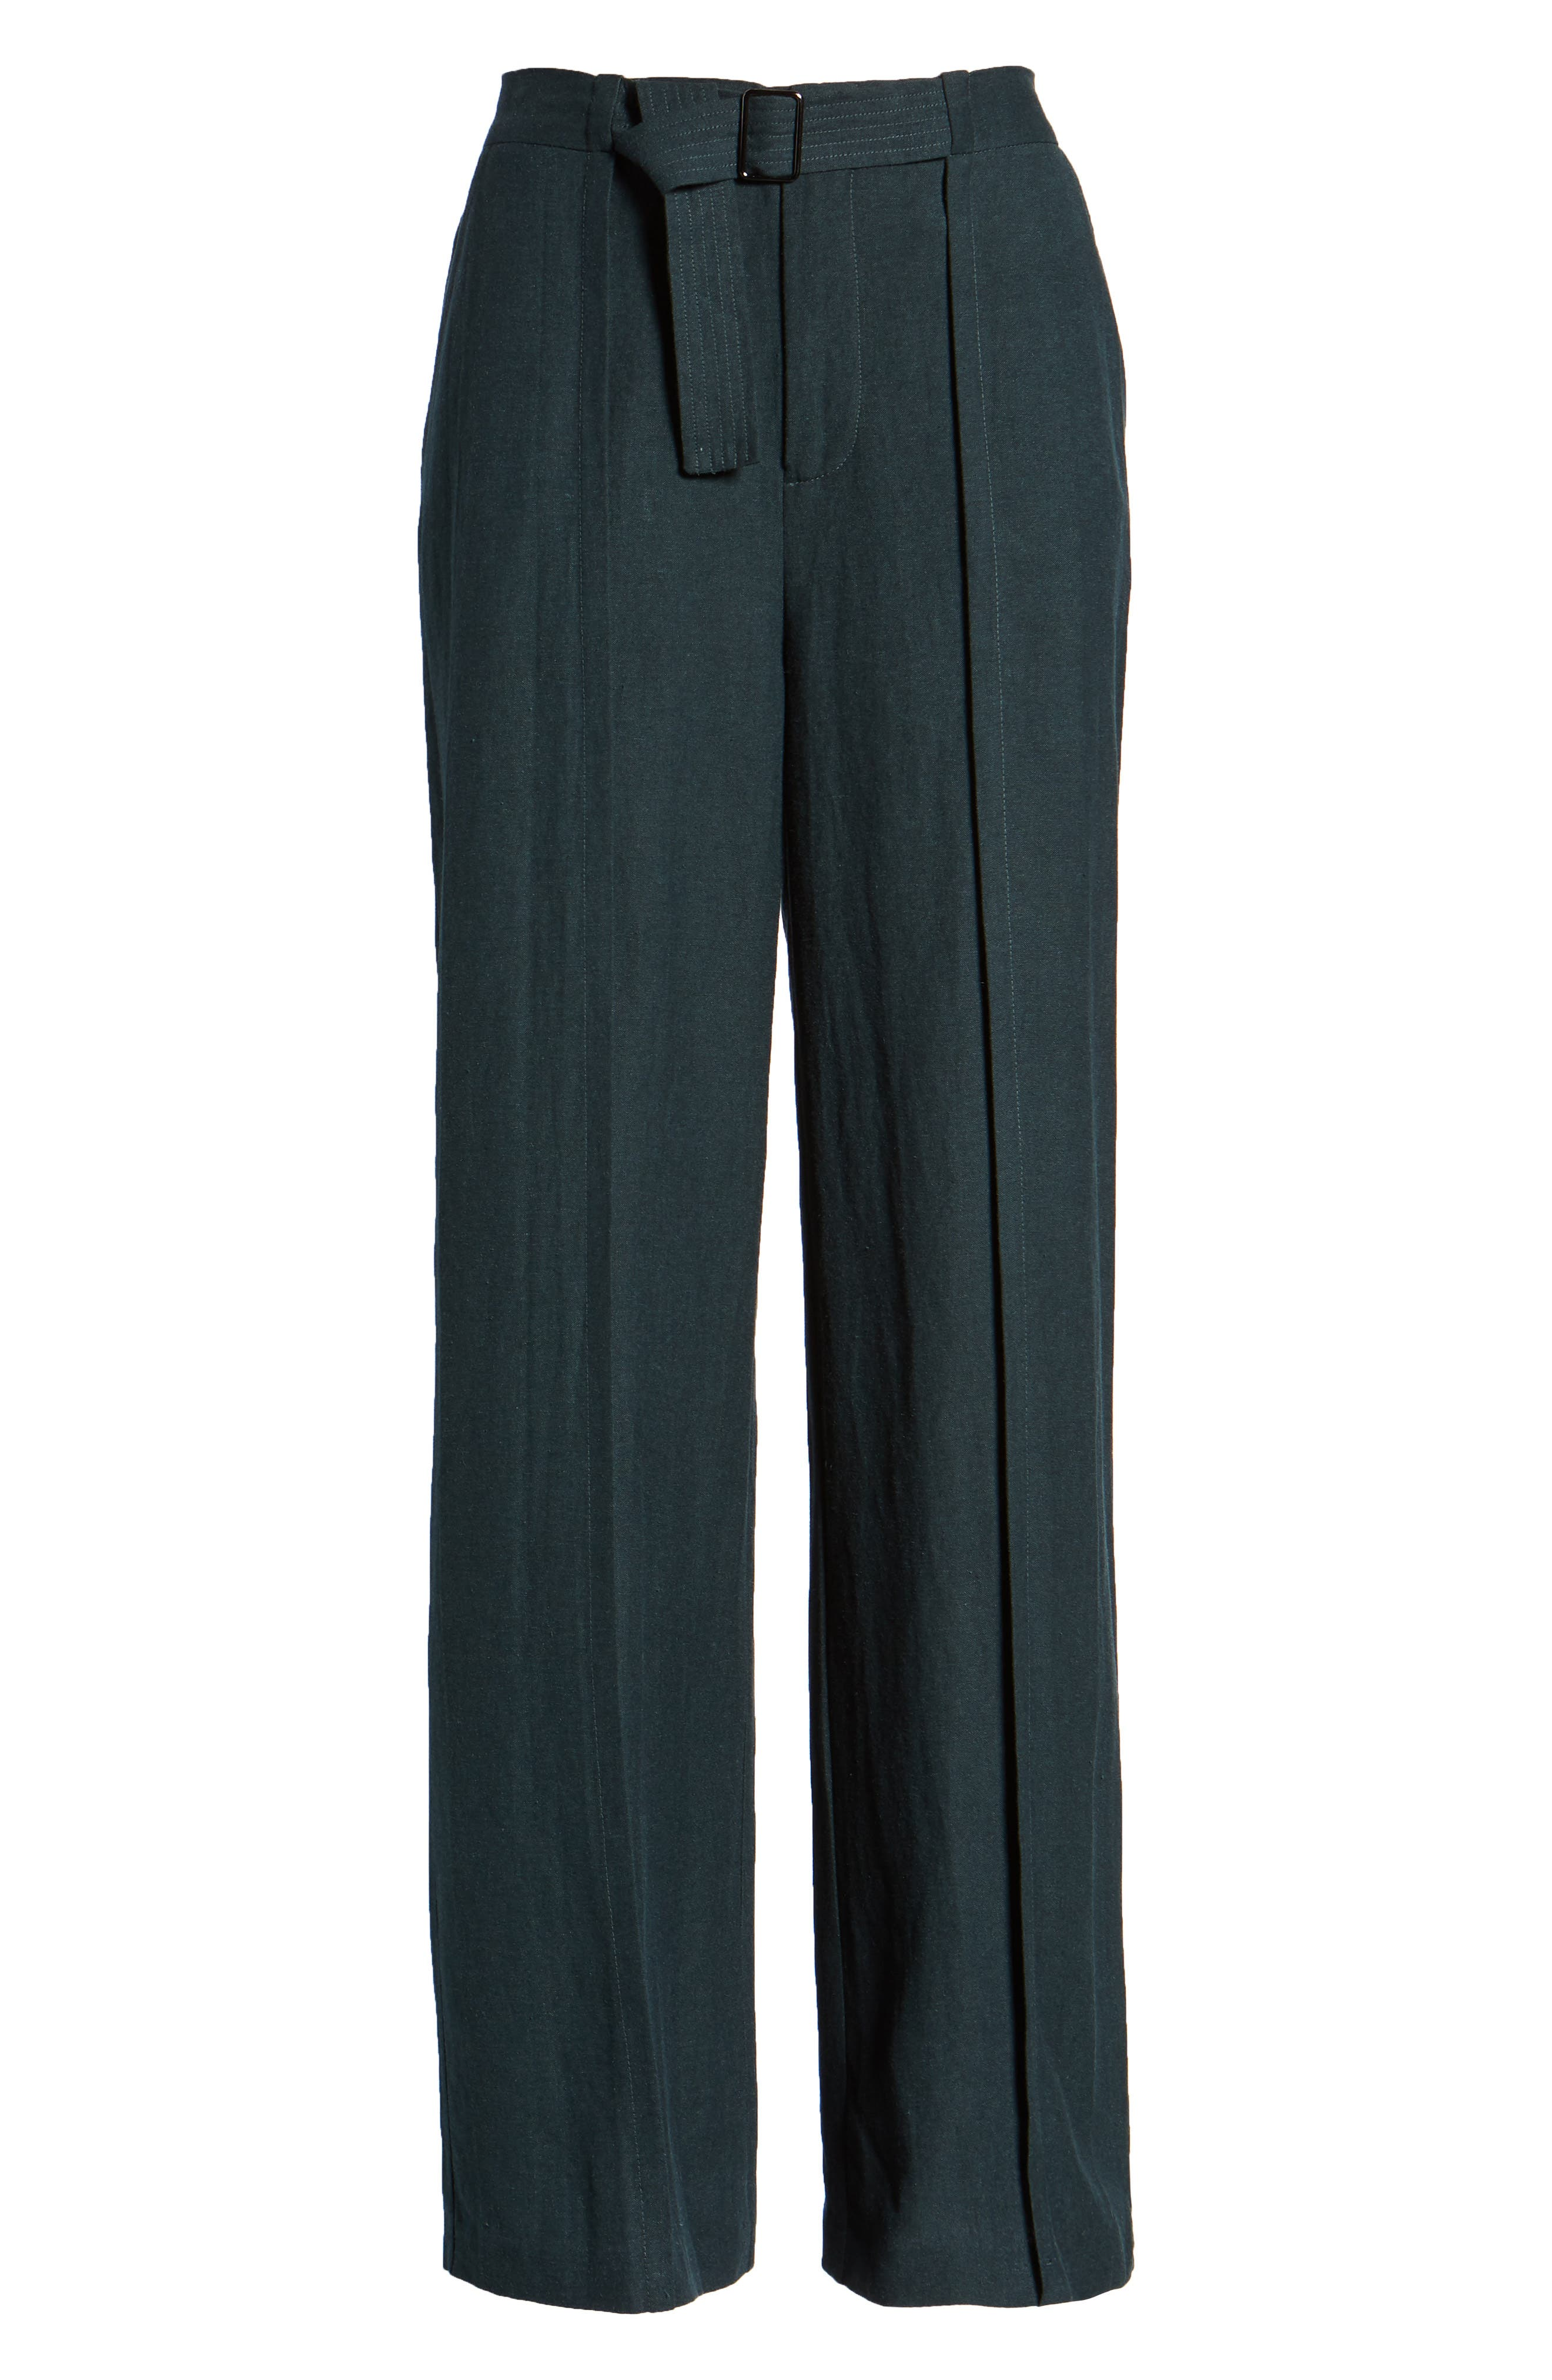 Belted High Waist Pants,                             Alternate thumbnail 6, color,                             FOREST